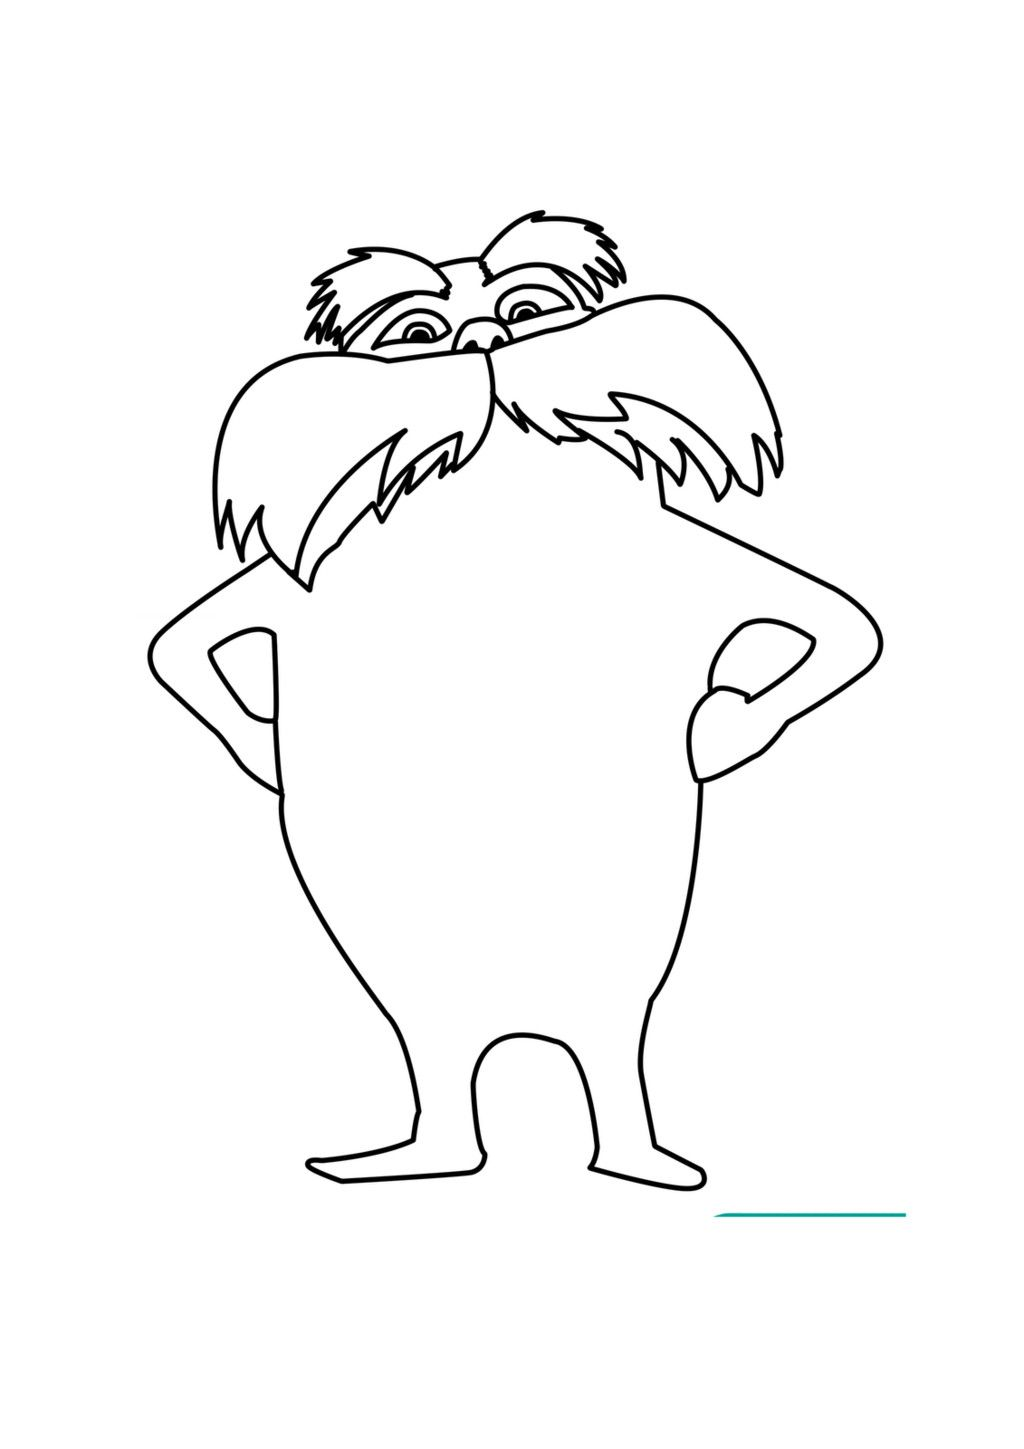 Lorax Coloring Pages | Dr. Seuss | Pinterest